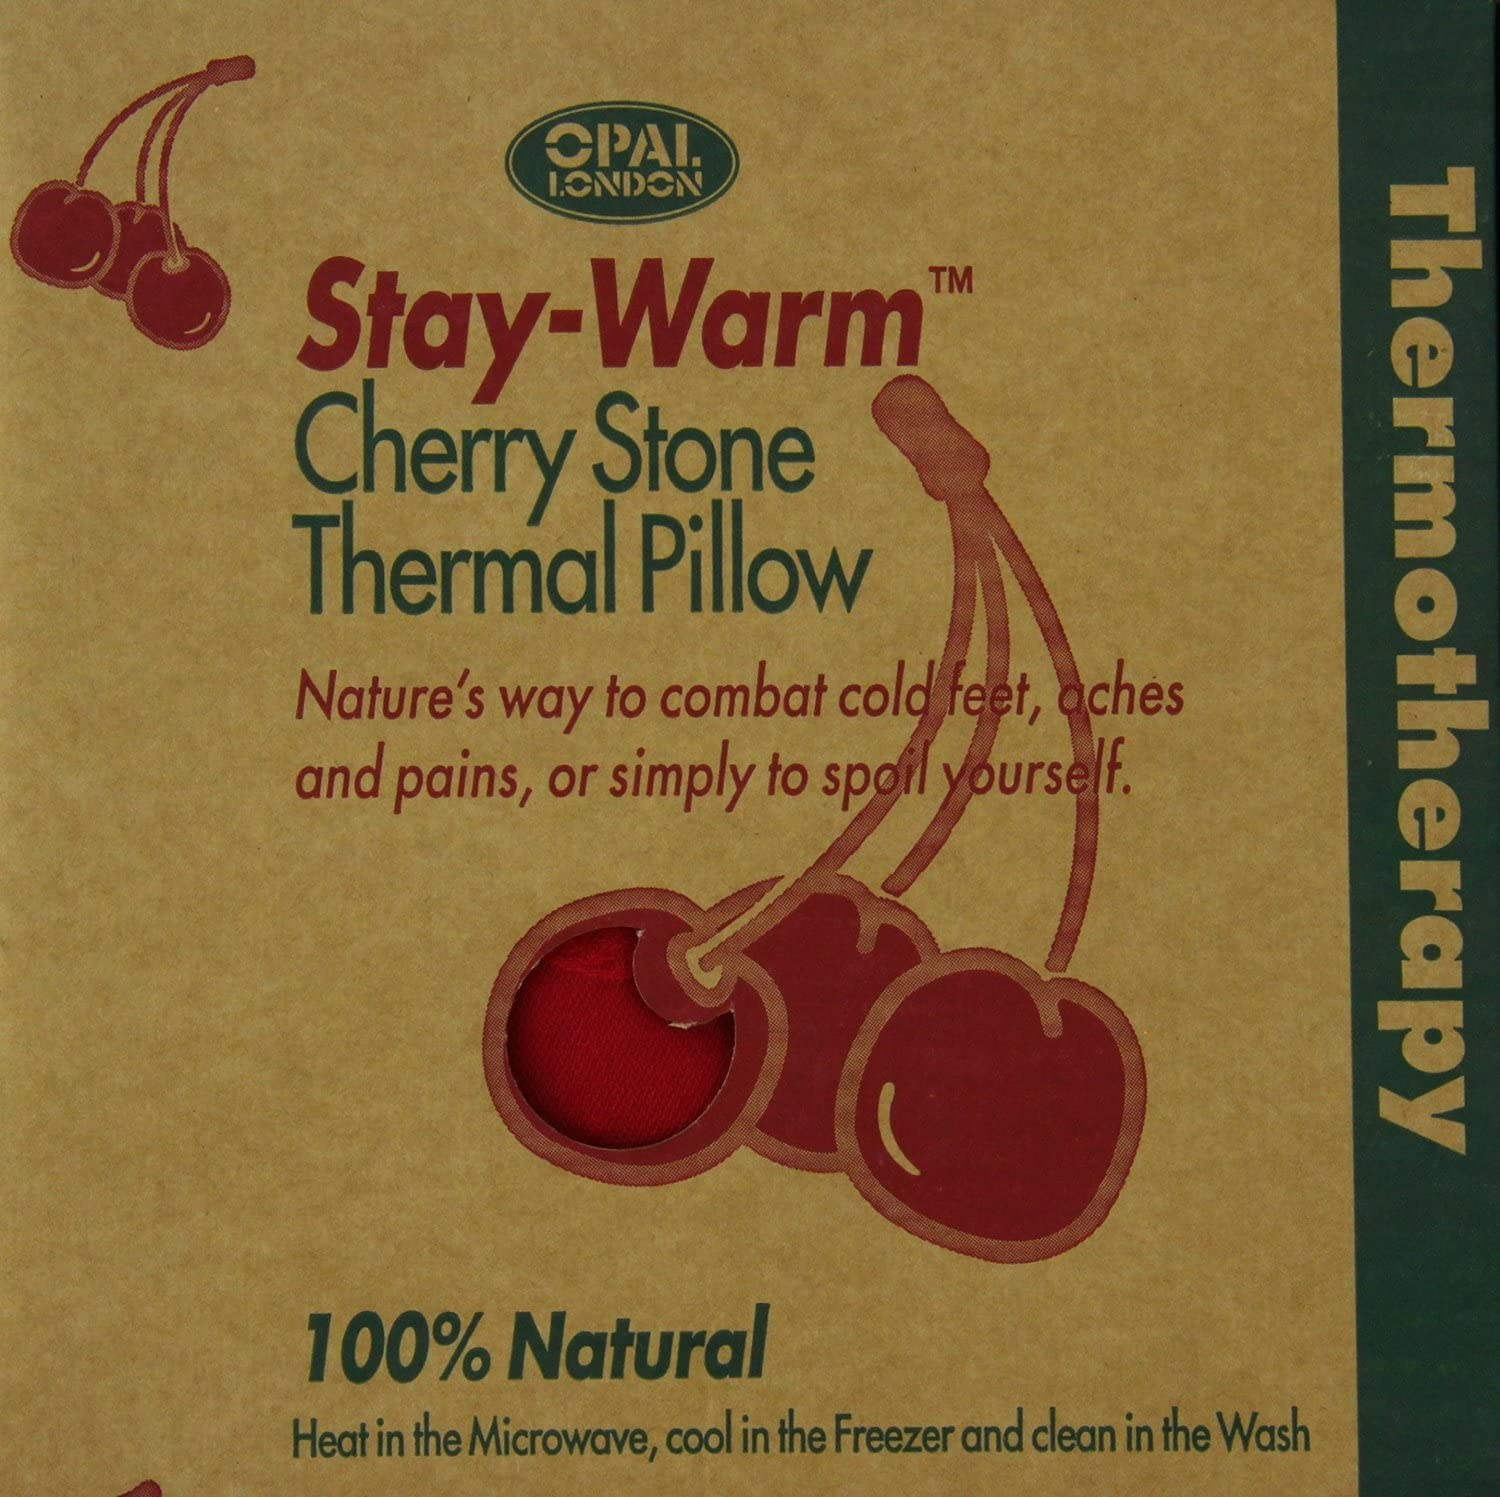 Organic Cherry Stone Pillow by Bonblatt /Öko-Tex 100 Certificate Heat Cushion Naturally and Fairly Produced in Germany Babies Grain Cushion Suitable for Adults Children and Animals